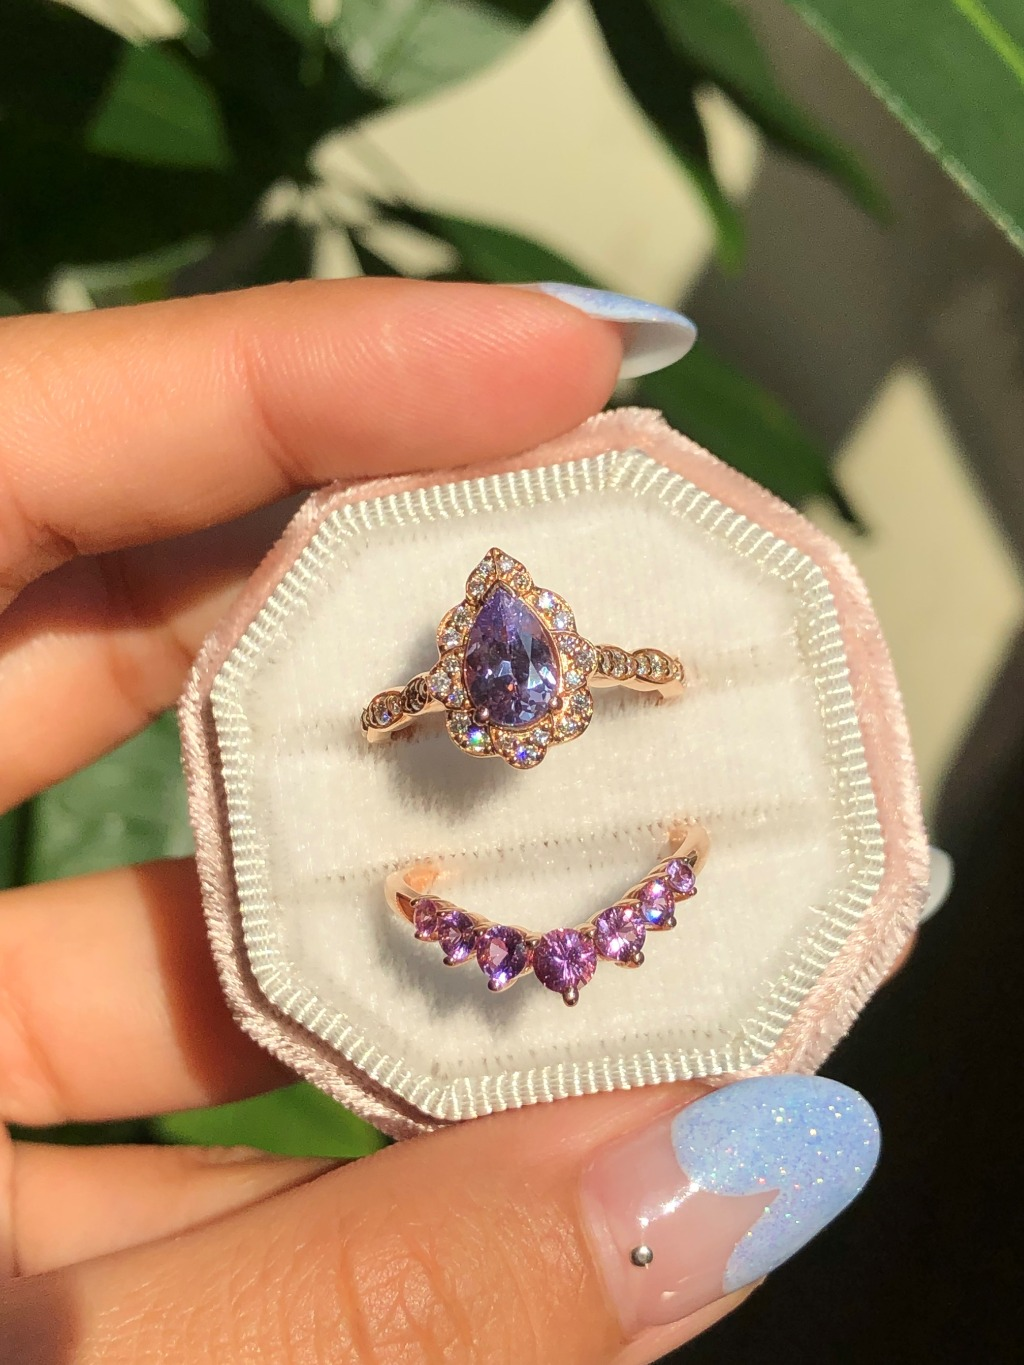 Artfully crafted purple sapphire bridal set features a 1.00 carat pear lavender purple sapphire engagement ring set in rose gold vintage